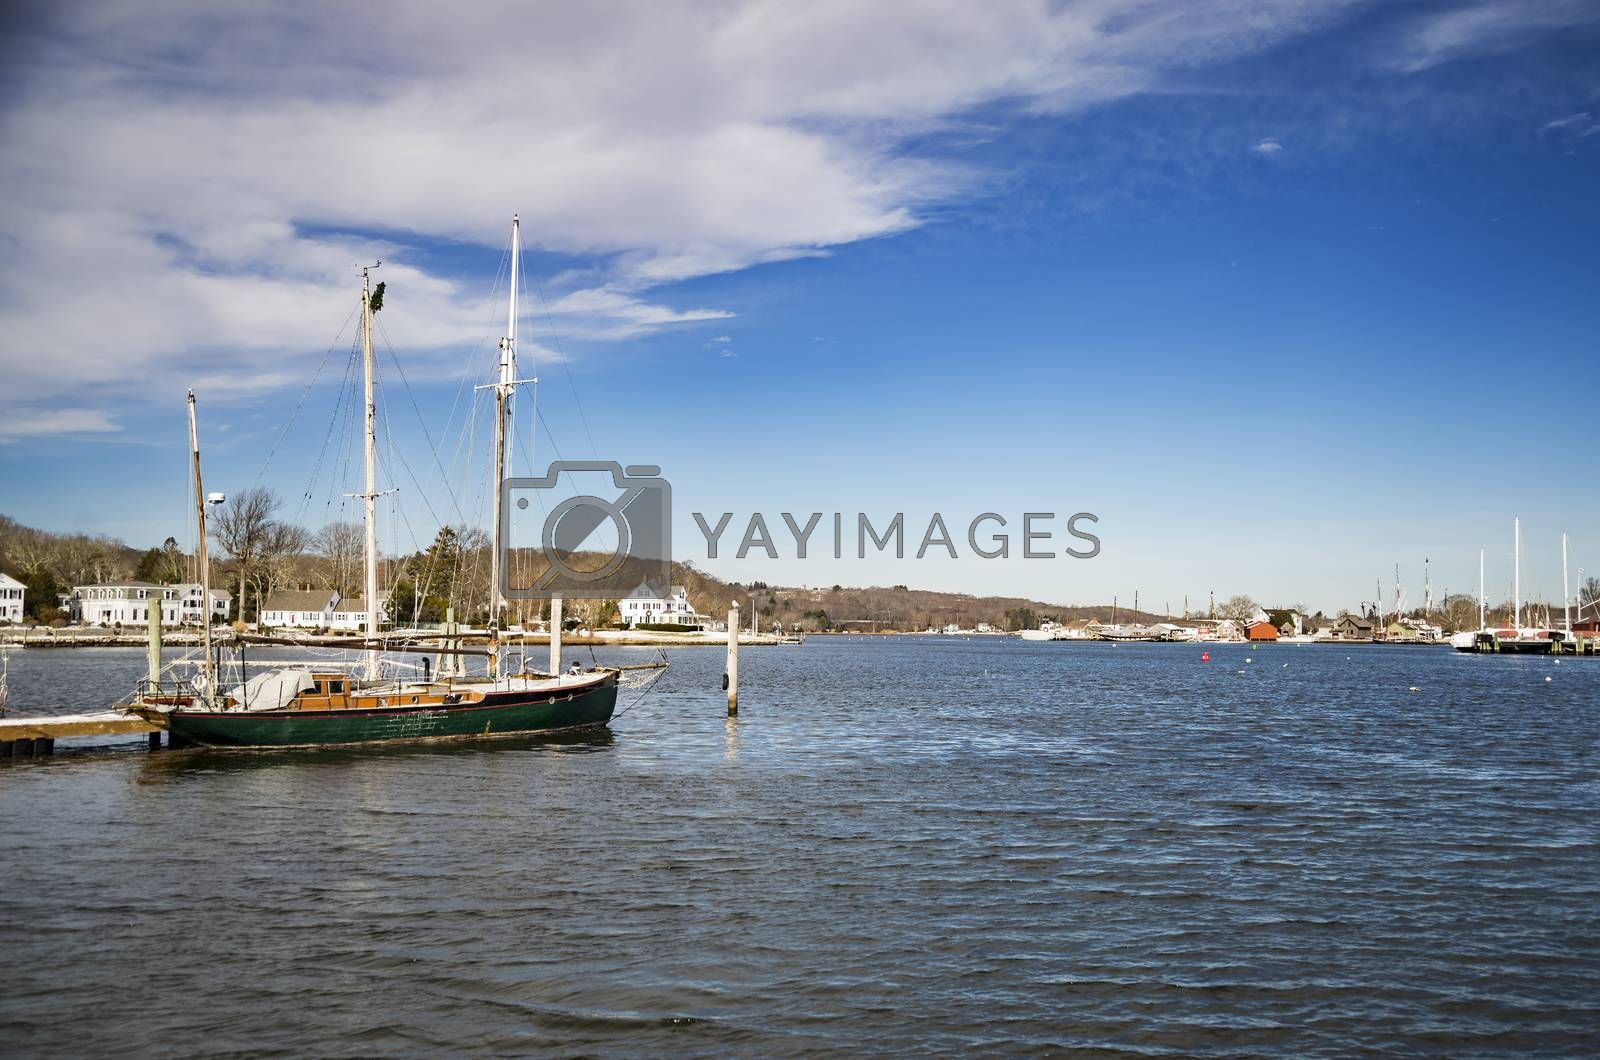 View of Mystic, Connecticut. The village is located on the Mystic River, which flows into Long Island Sound, providing access to the sea.